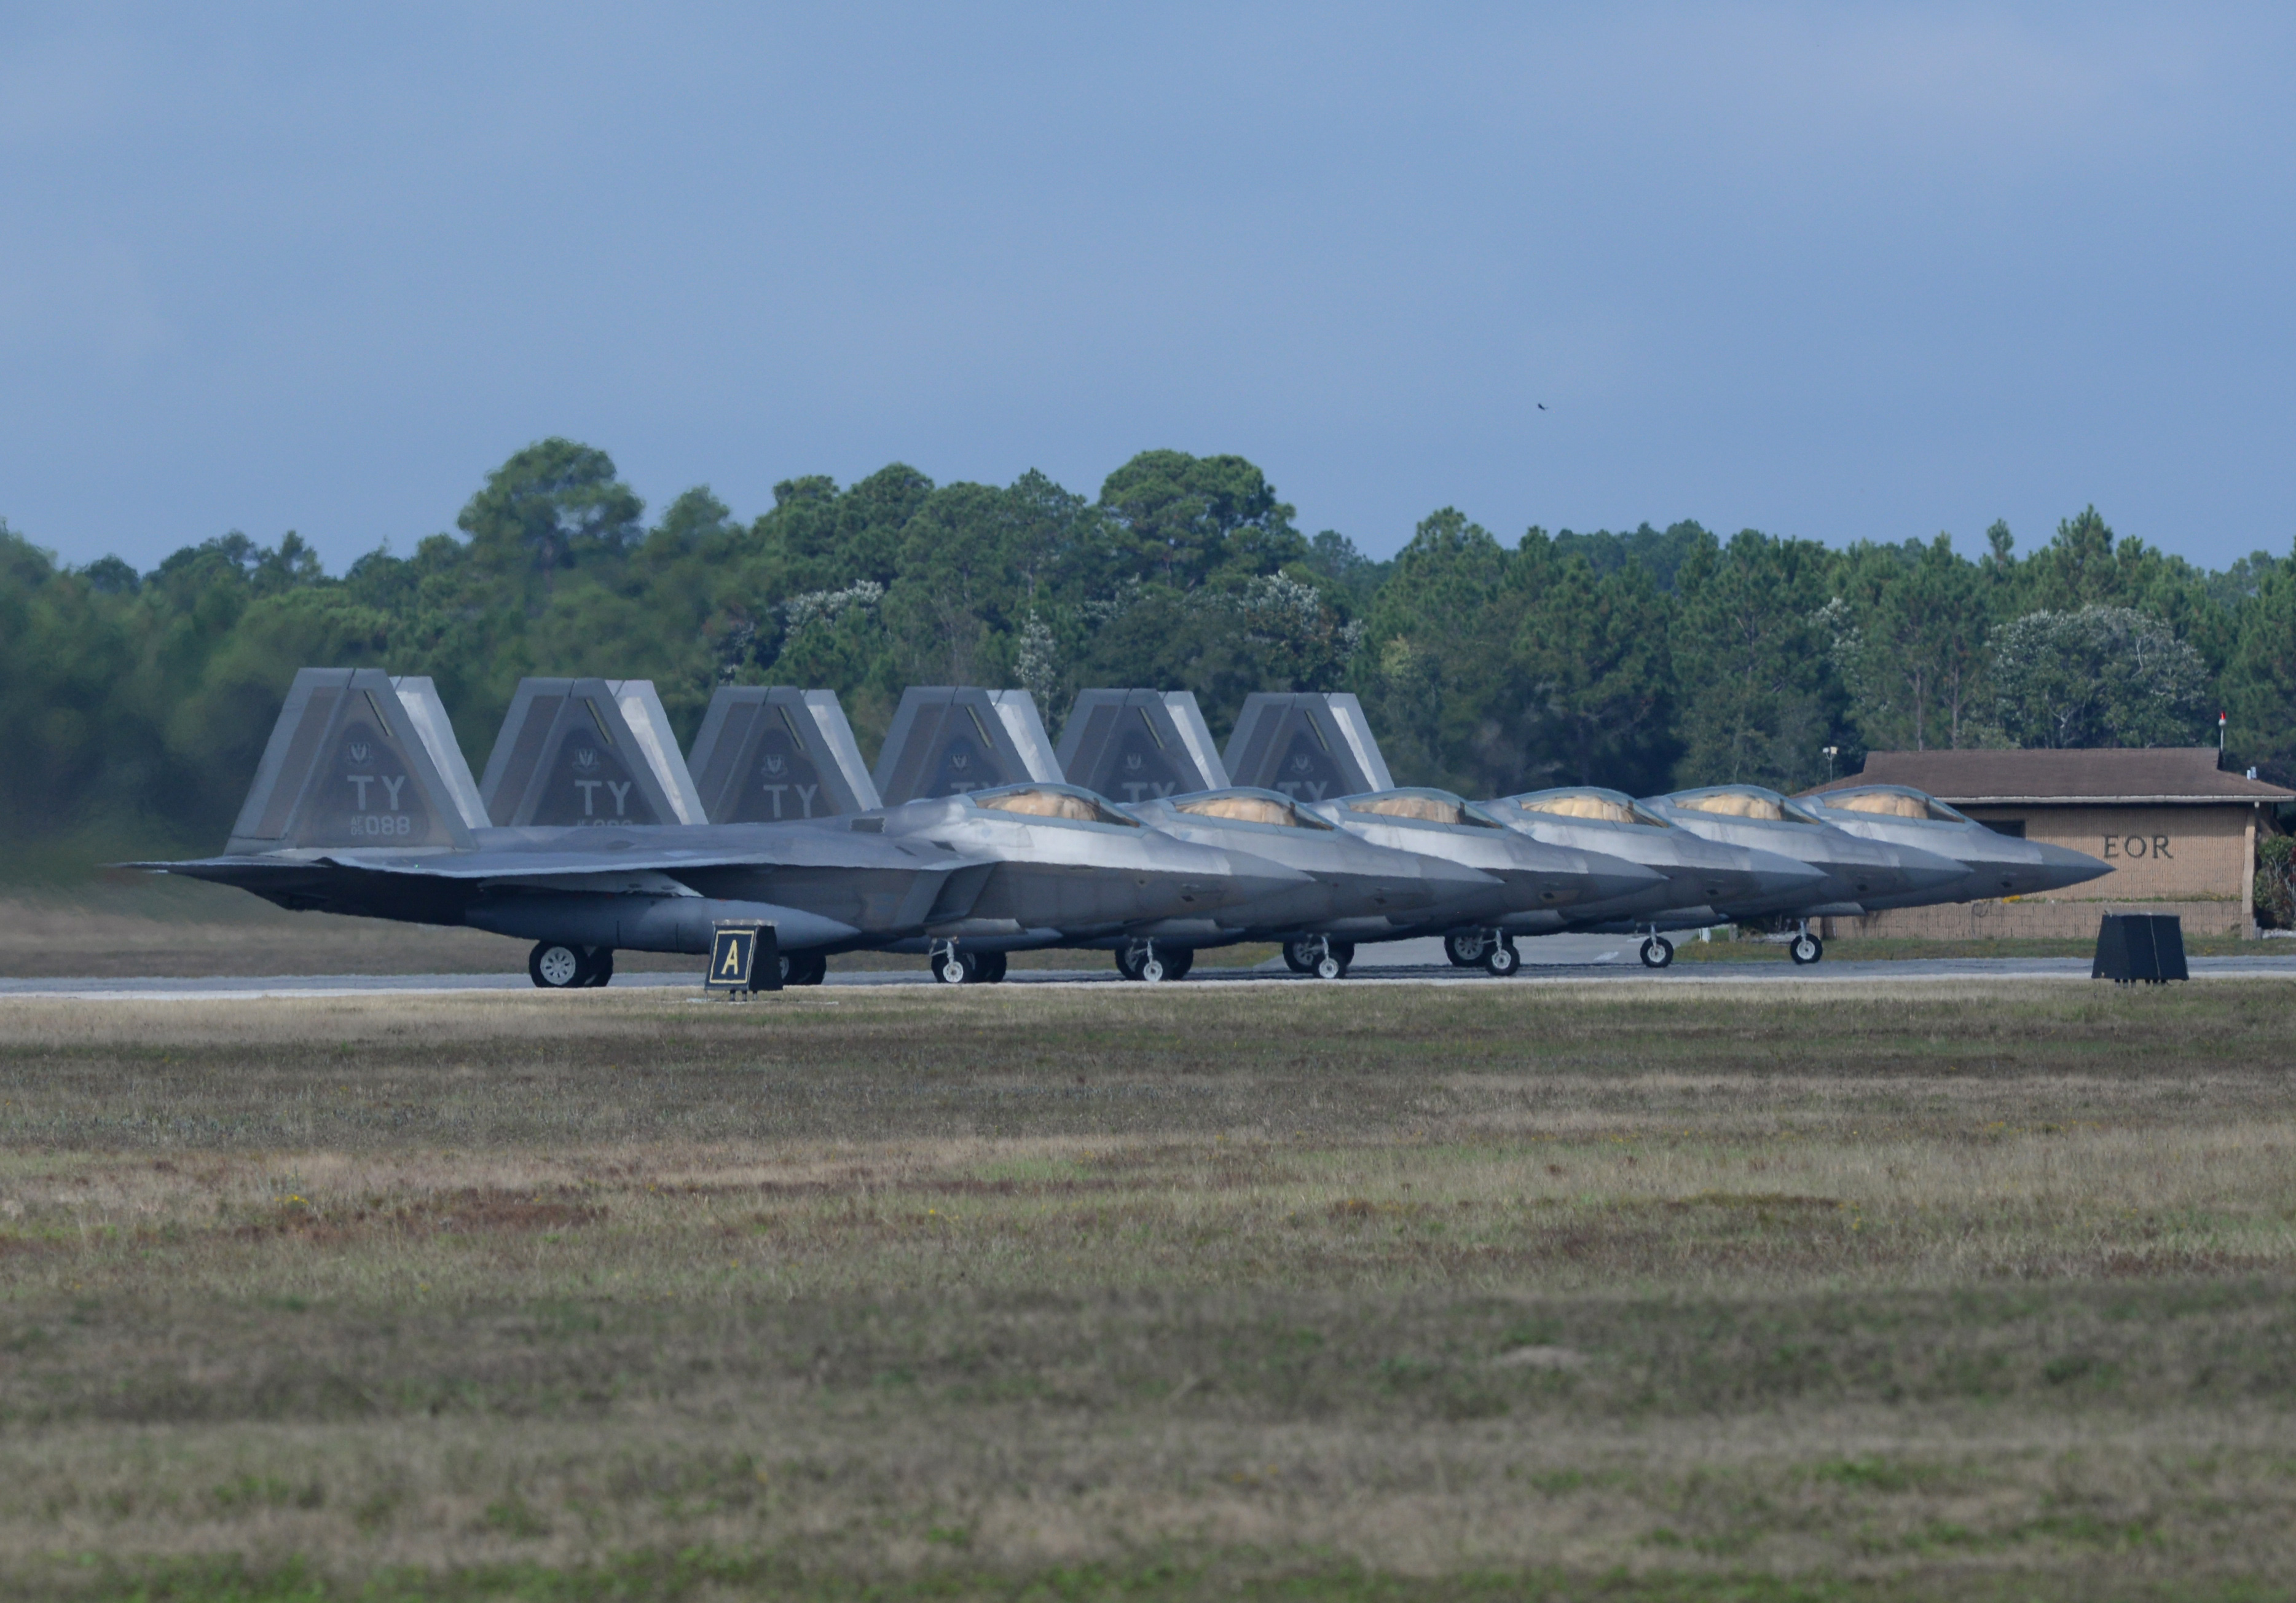 Six 95th Fighter Squadron F-22 Raptors line up before takeoff Nov. 5 at the Tyndall Air Force Base, Fla., flightline. Tyndall AFB is the world's largest contingent of F-22s. (U.S. Air Force Photo by Senior Airman Sergio Gamboa/Released)